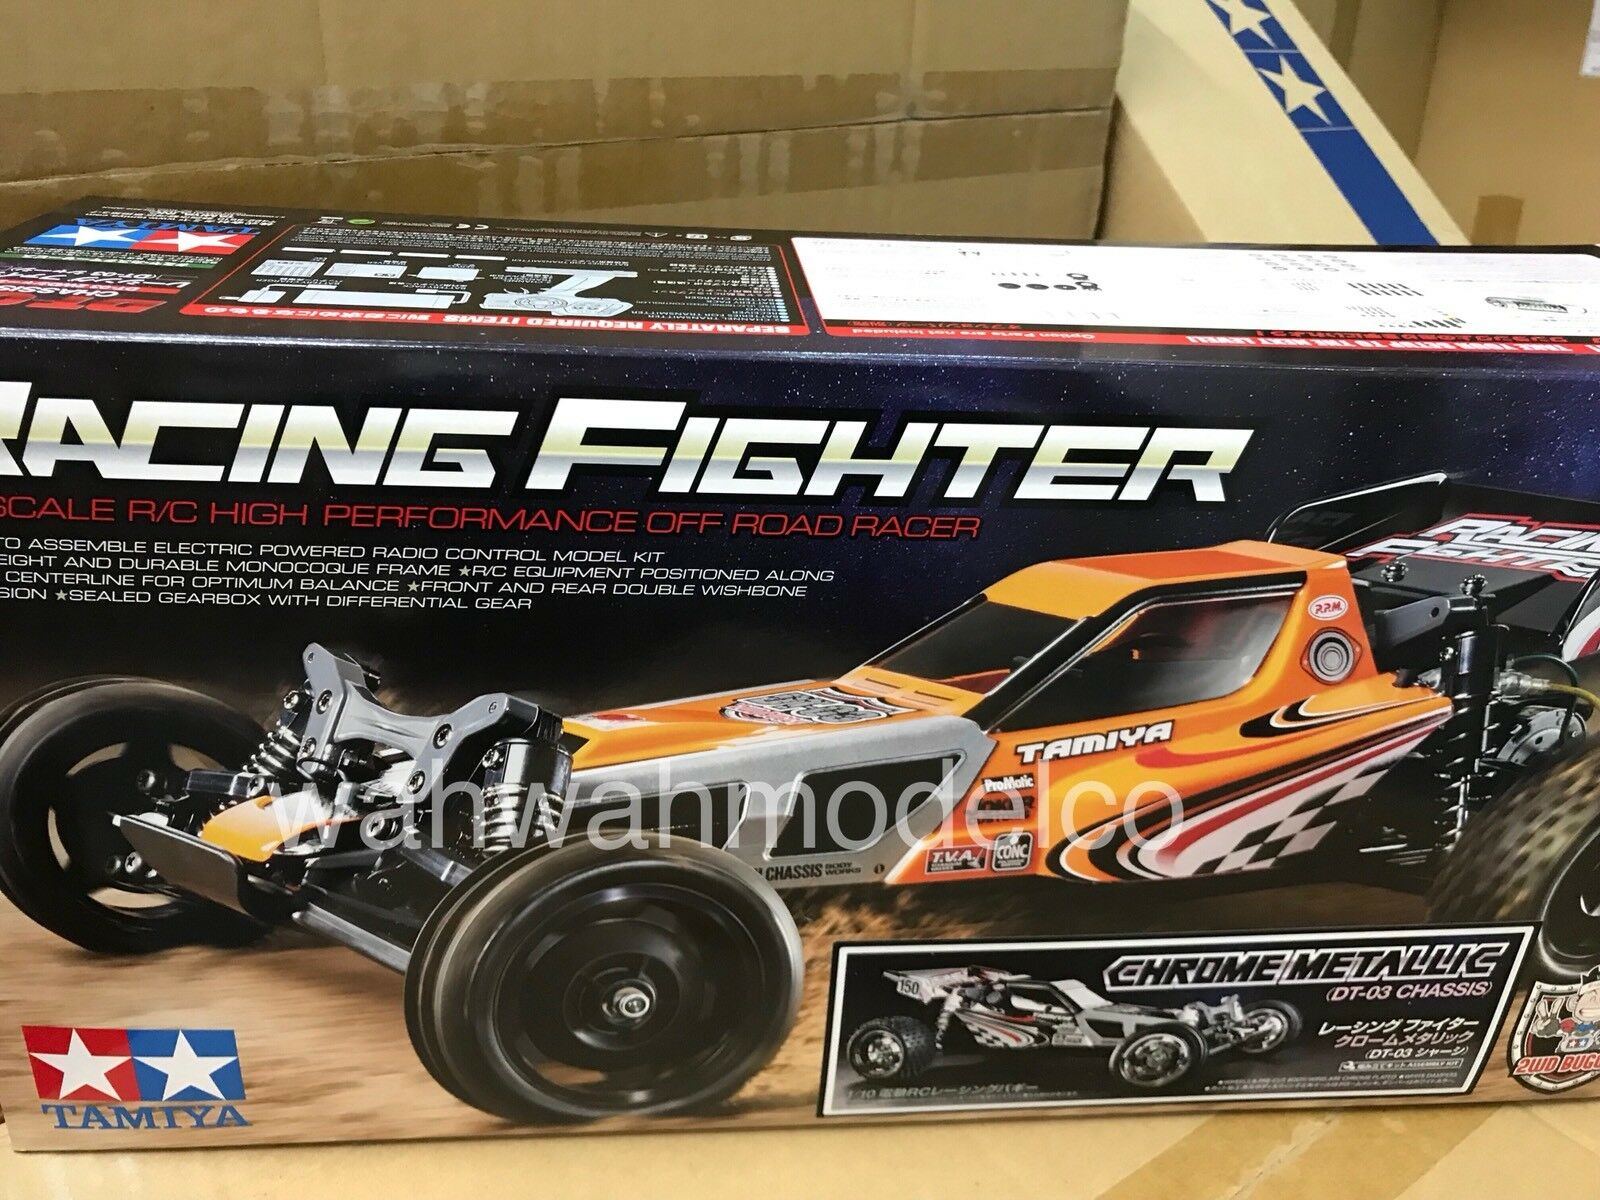 47347 Tamiya 1 10 RC RACING FIGHTER DT03 Cromo Metálico